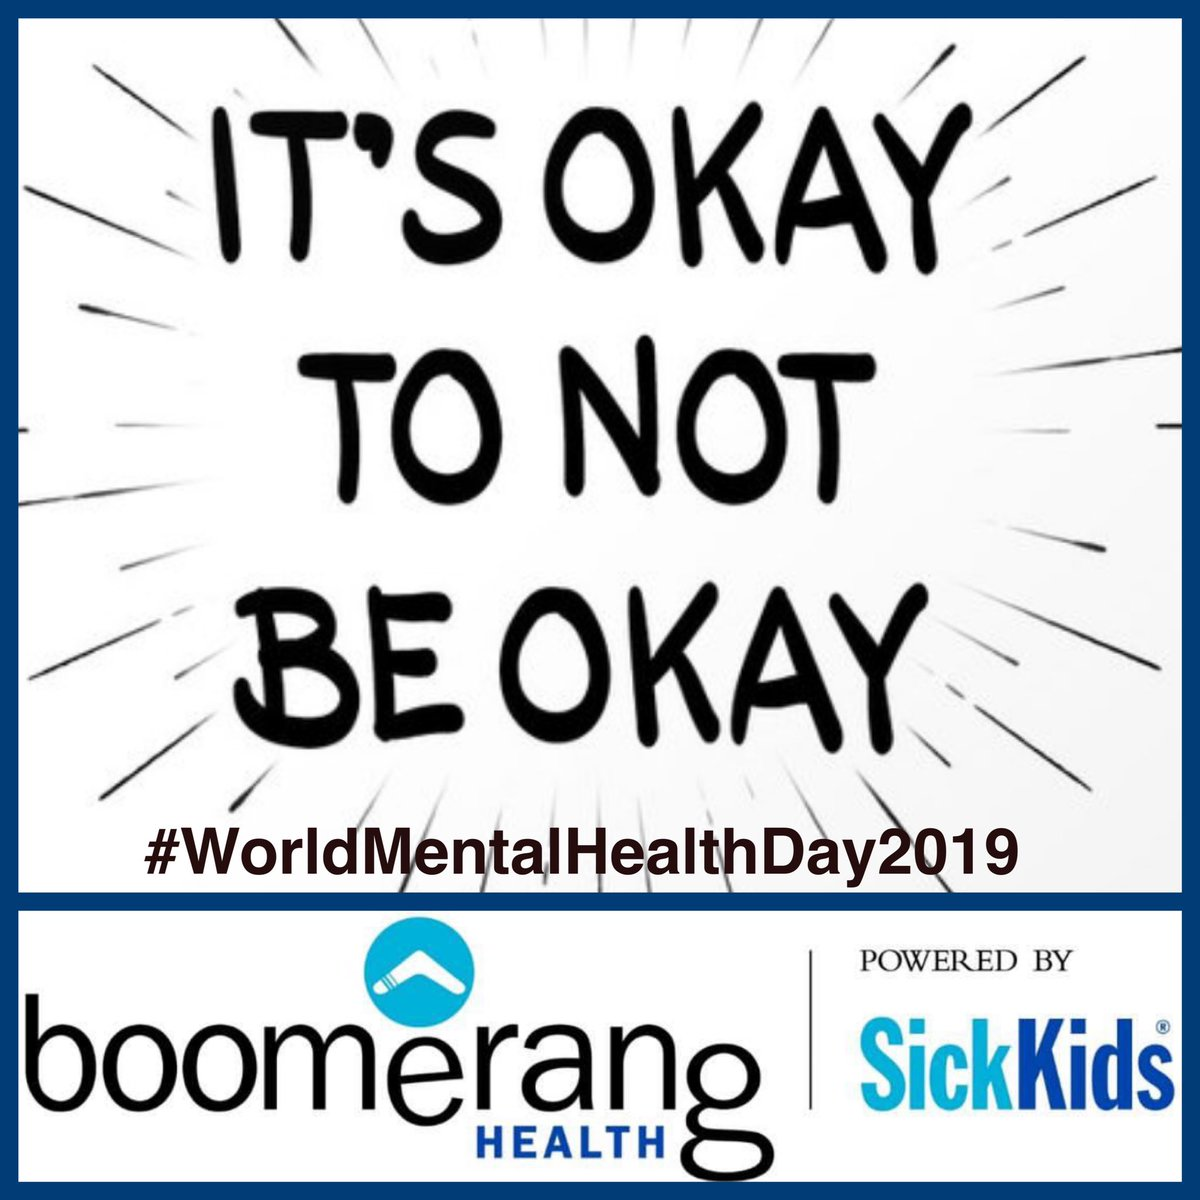 Today is #WorldMentalHealthDay 👍#Accept ❤️#Love 👫#Support 👂🏻#Listen 🚫#DontJudge 😰#FeelTheFeels At #BoomerangHealth, we are proud to offer a variety of services that support individuals living with #mentalhealth issues. Our door & hearts are always open. #SickKidsNorth